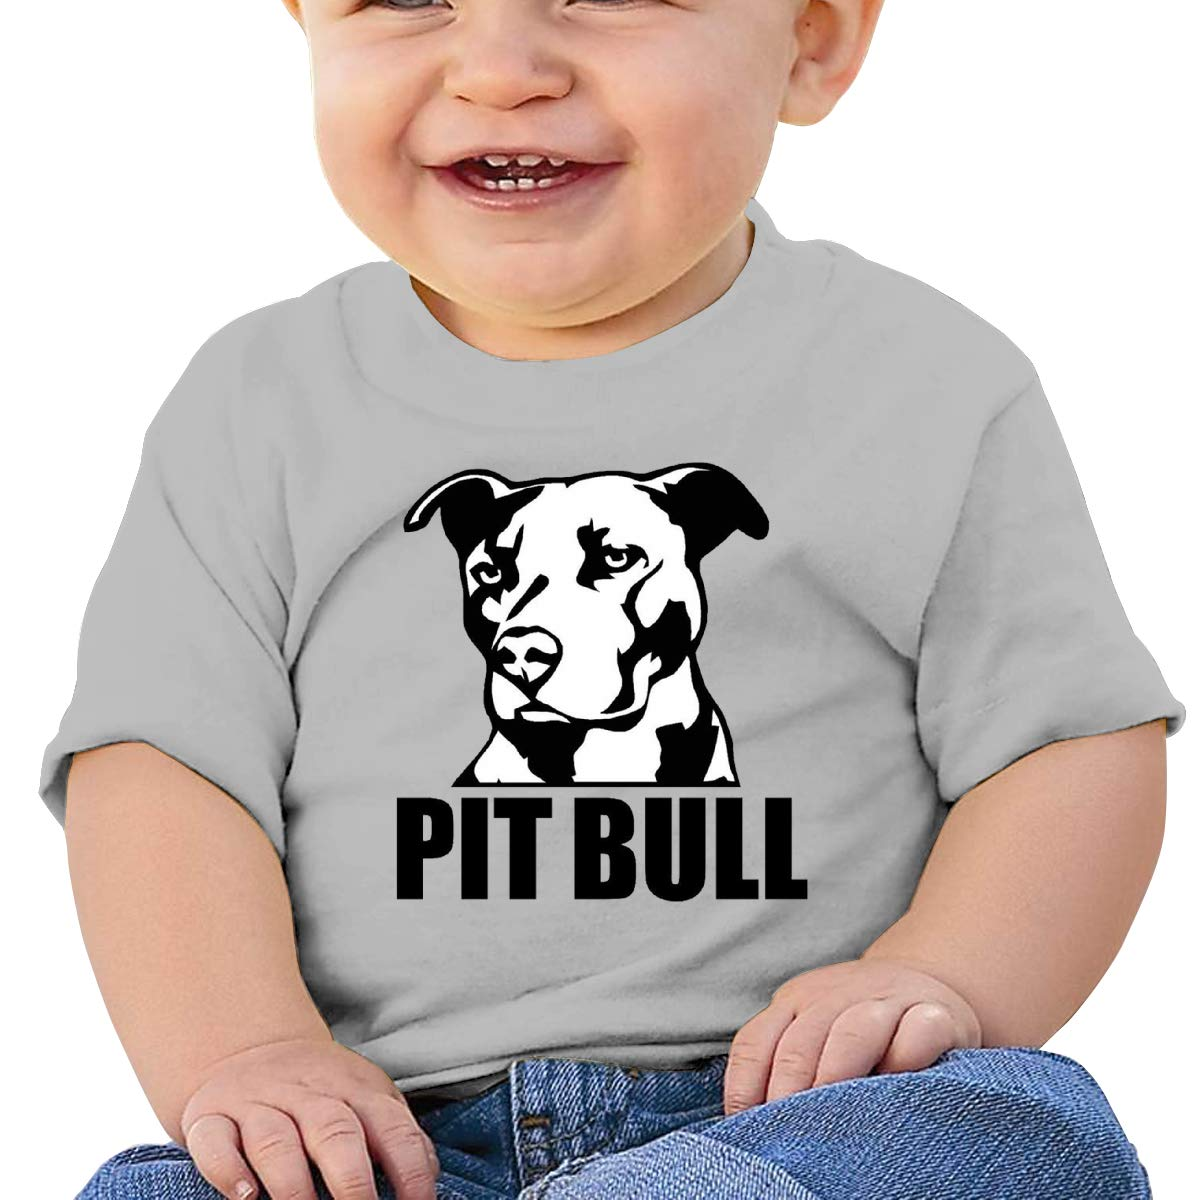 Pitbull Face Baby T-Shirt Infant Boy Girl Cotton T Shirts Cartoon Tops for 6M-2T Baby